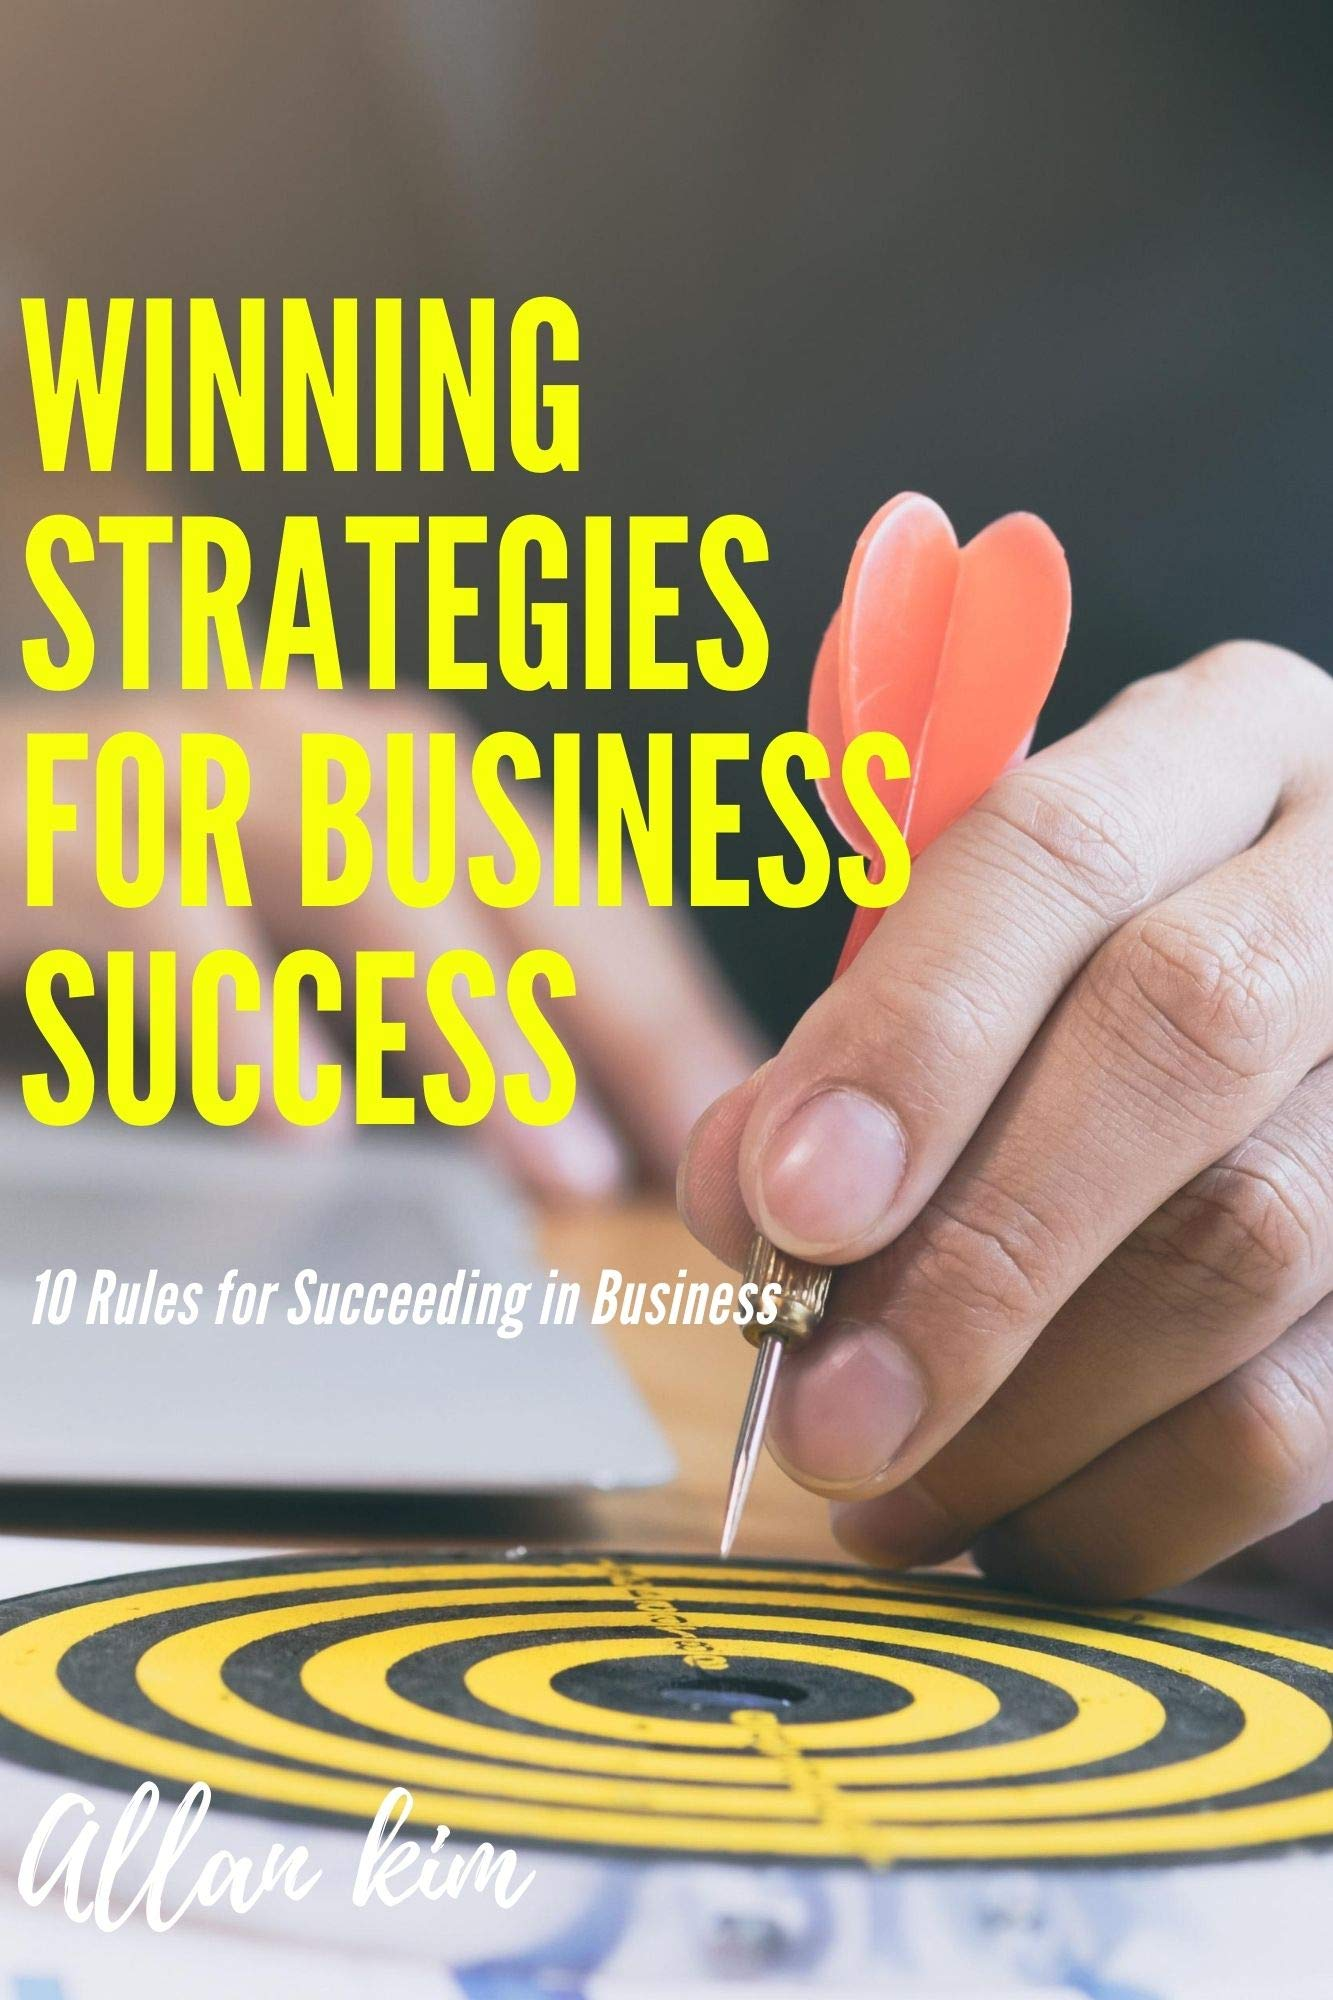 Winning Strategies For Business Success: 10 Rules for Succeeding in Business